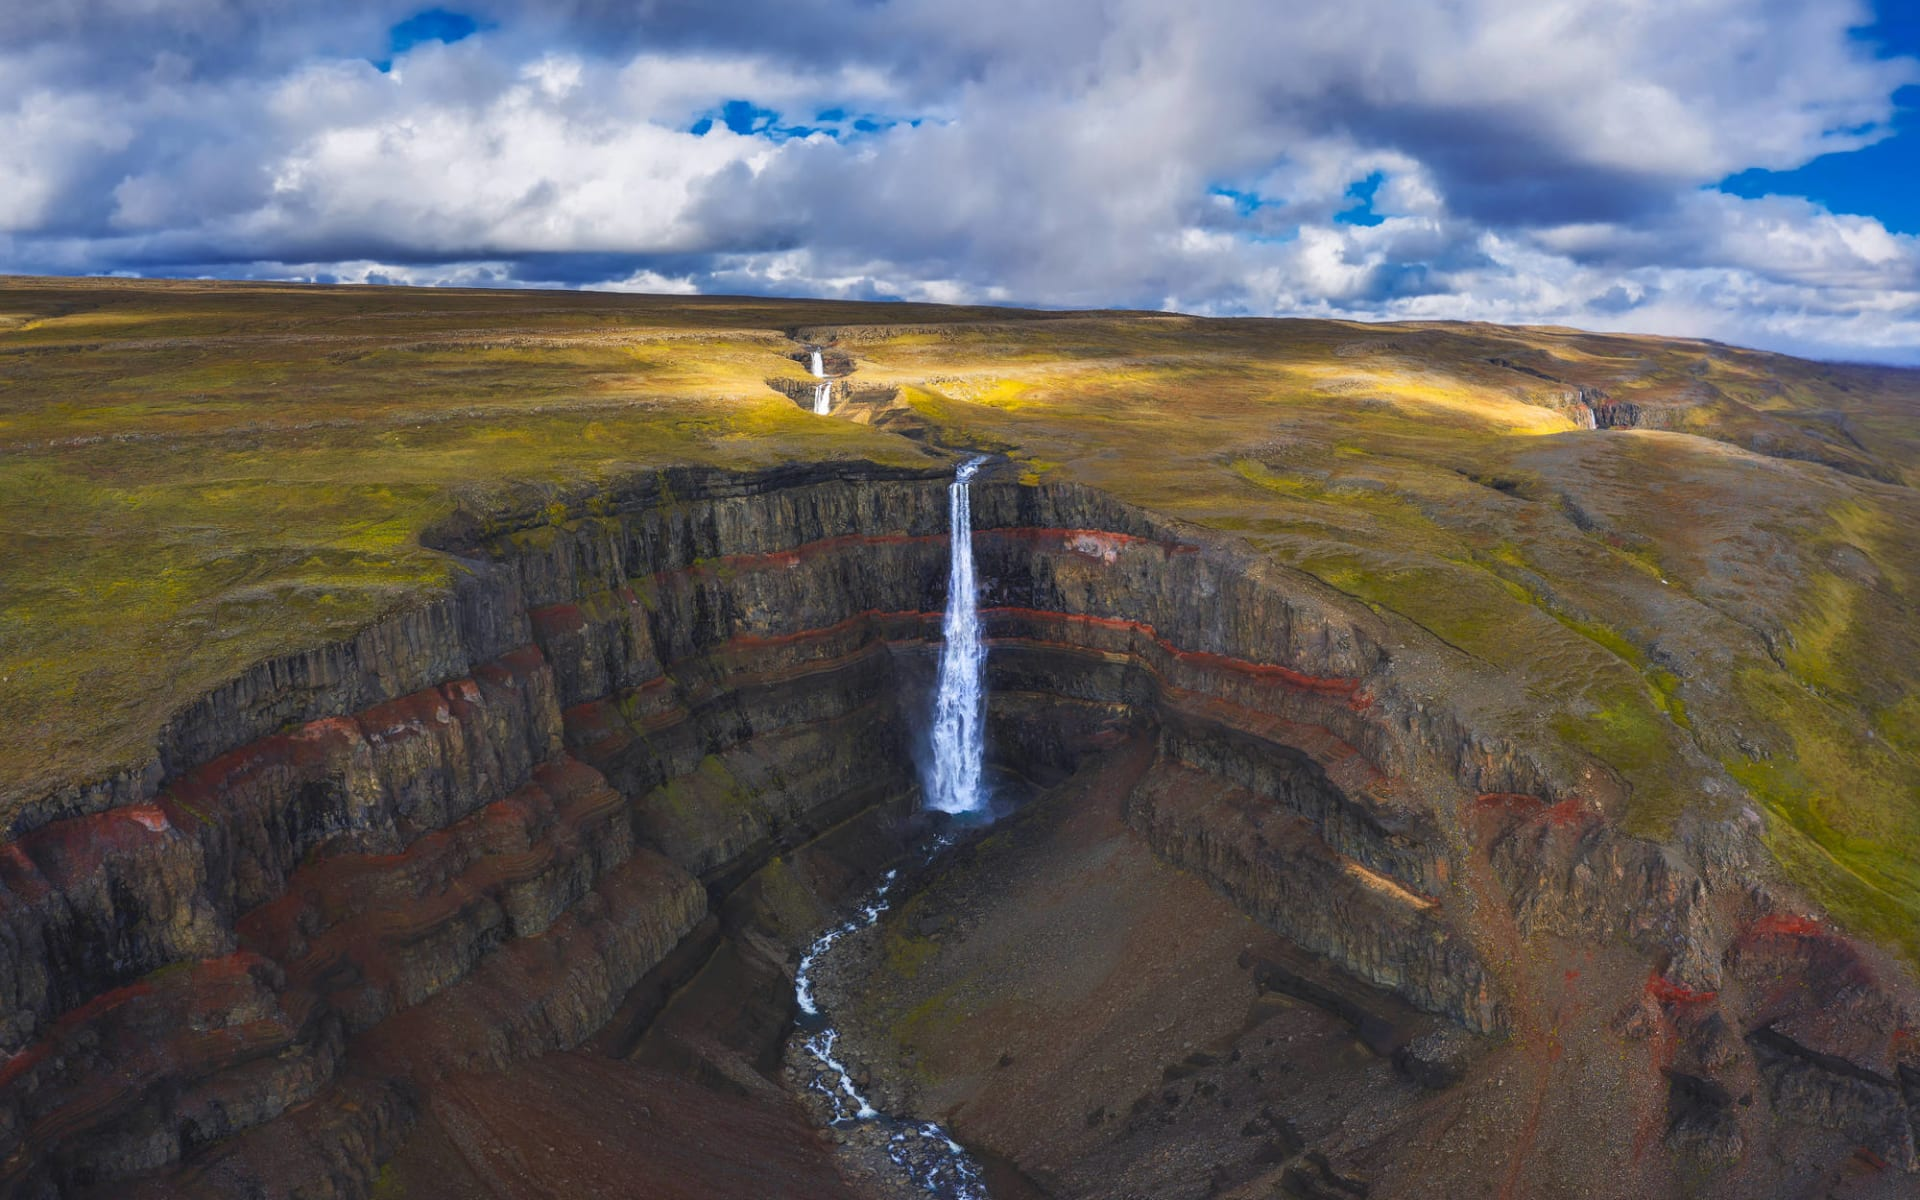 Hengifoss Guesthouse in Faskrudsfördur: Aerial view of the Hengifoss waterfall in East Iceland.